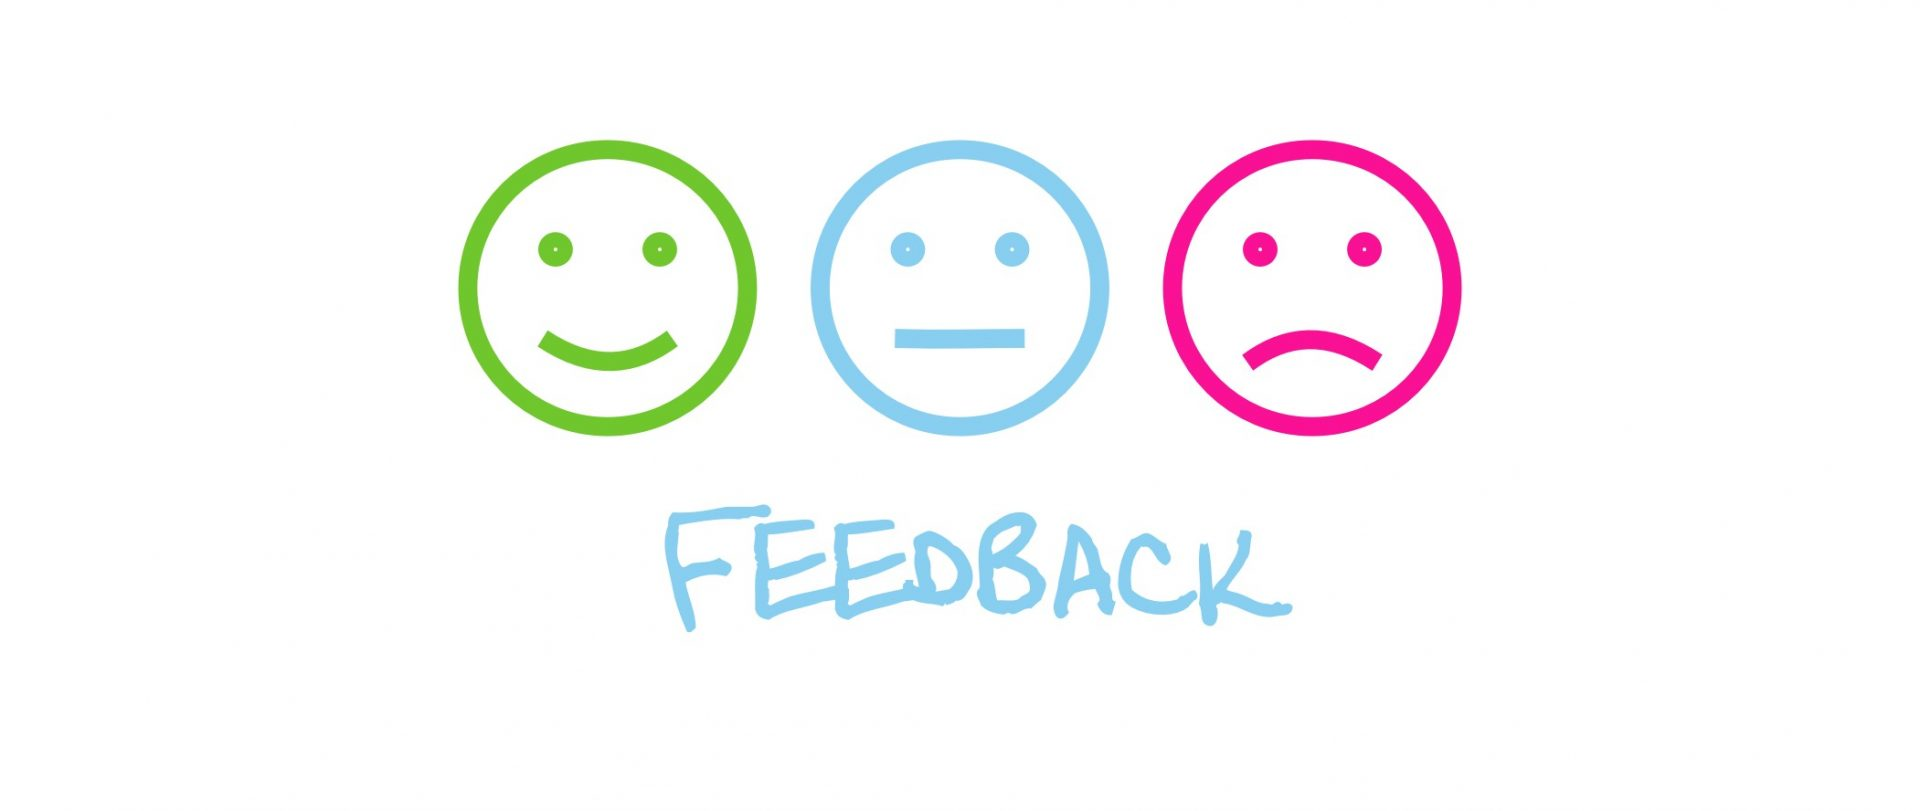 Real-Time Feedback: Why You Need It and What to Do With It